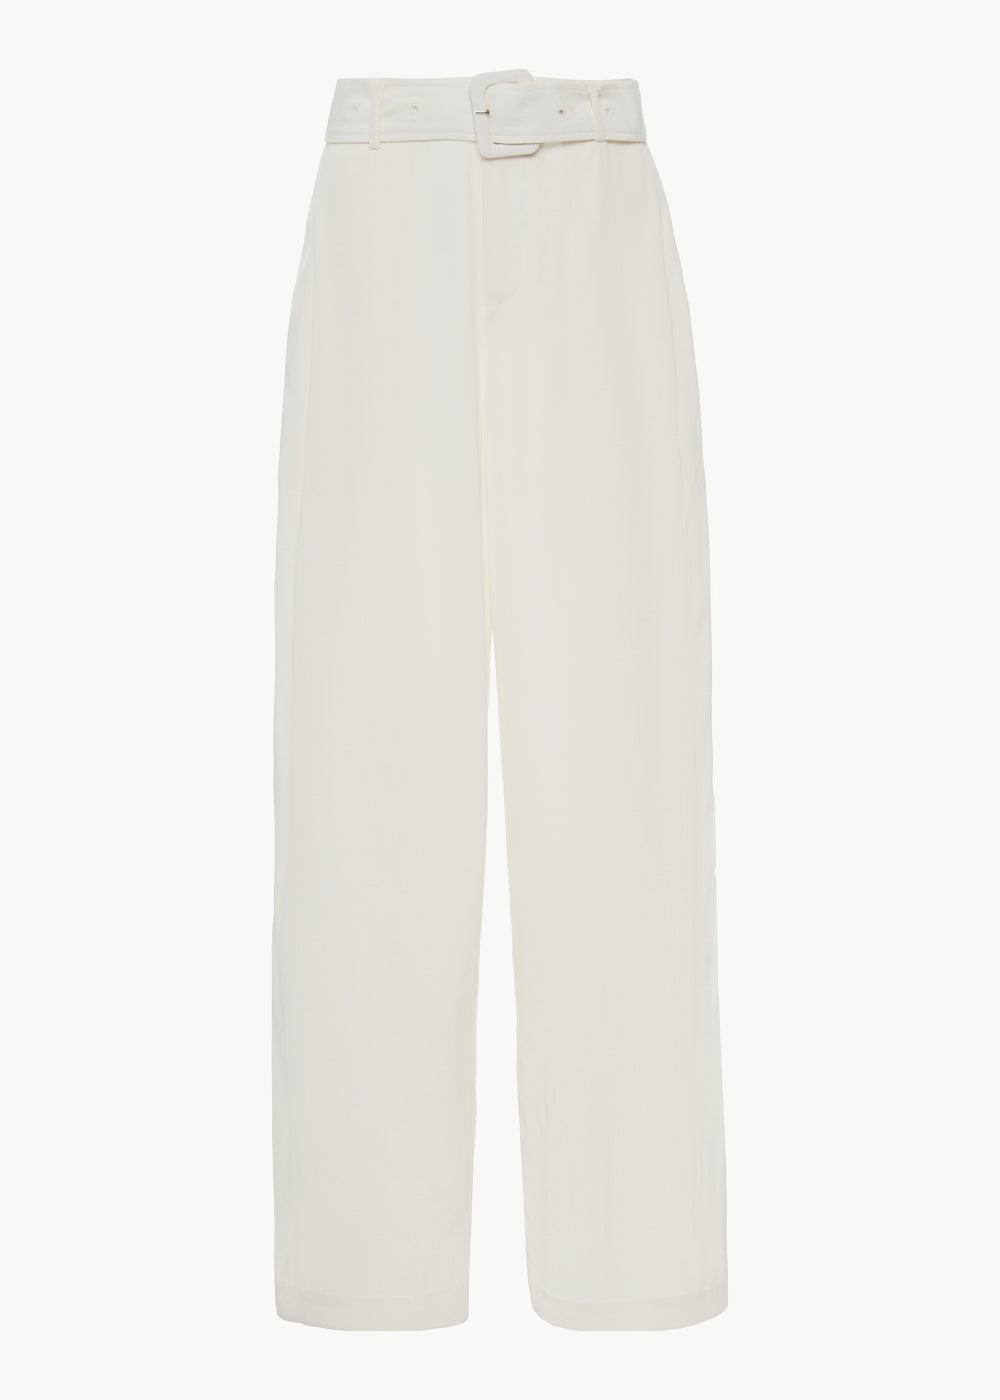 Belted Trouser in Stretch Crepe - Ivory - CO